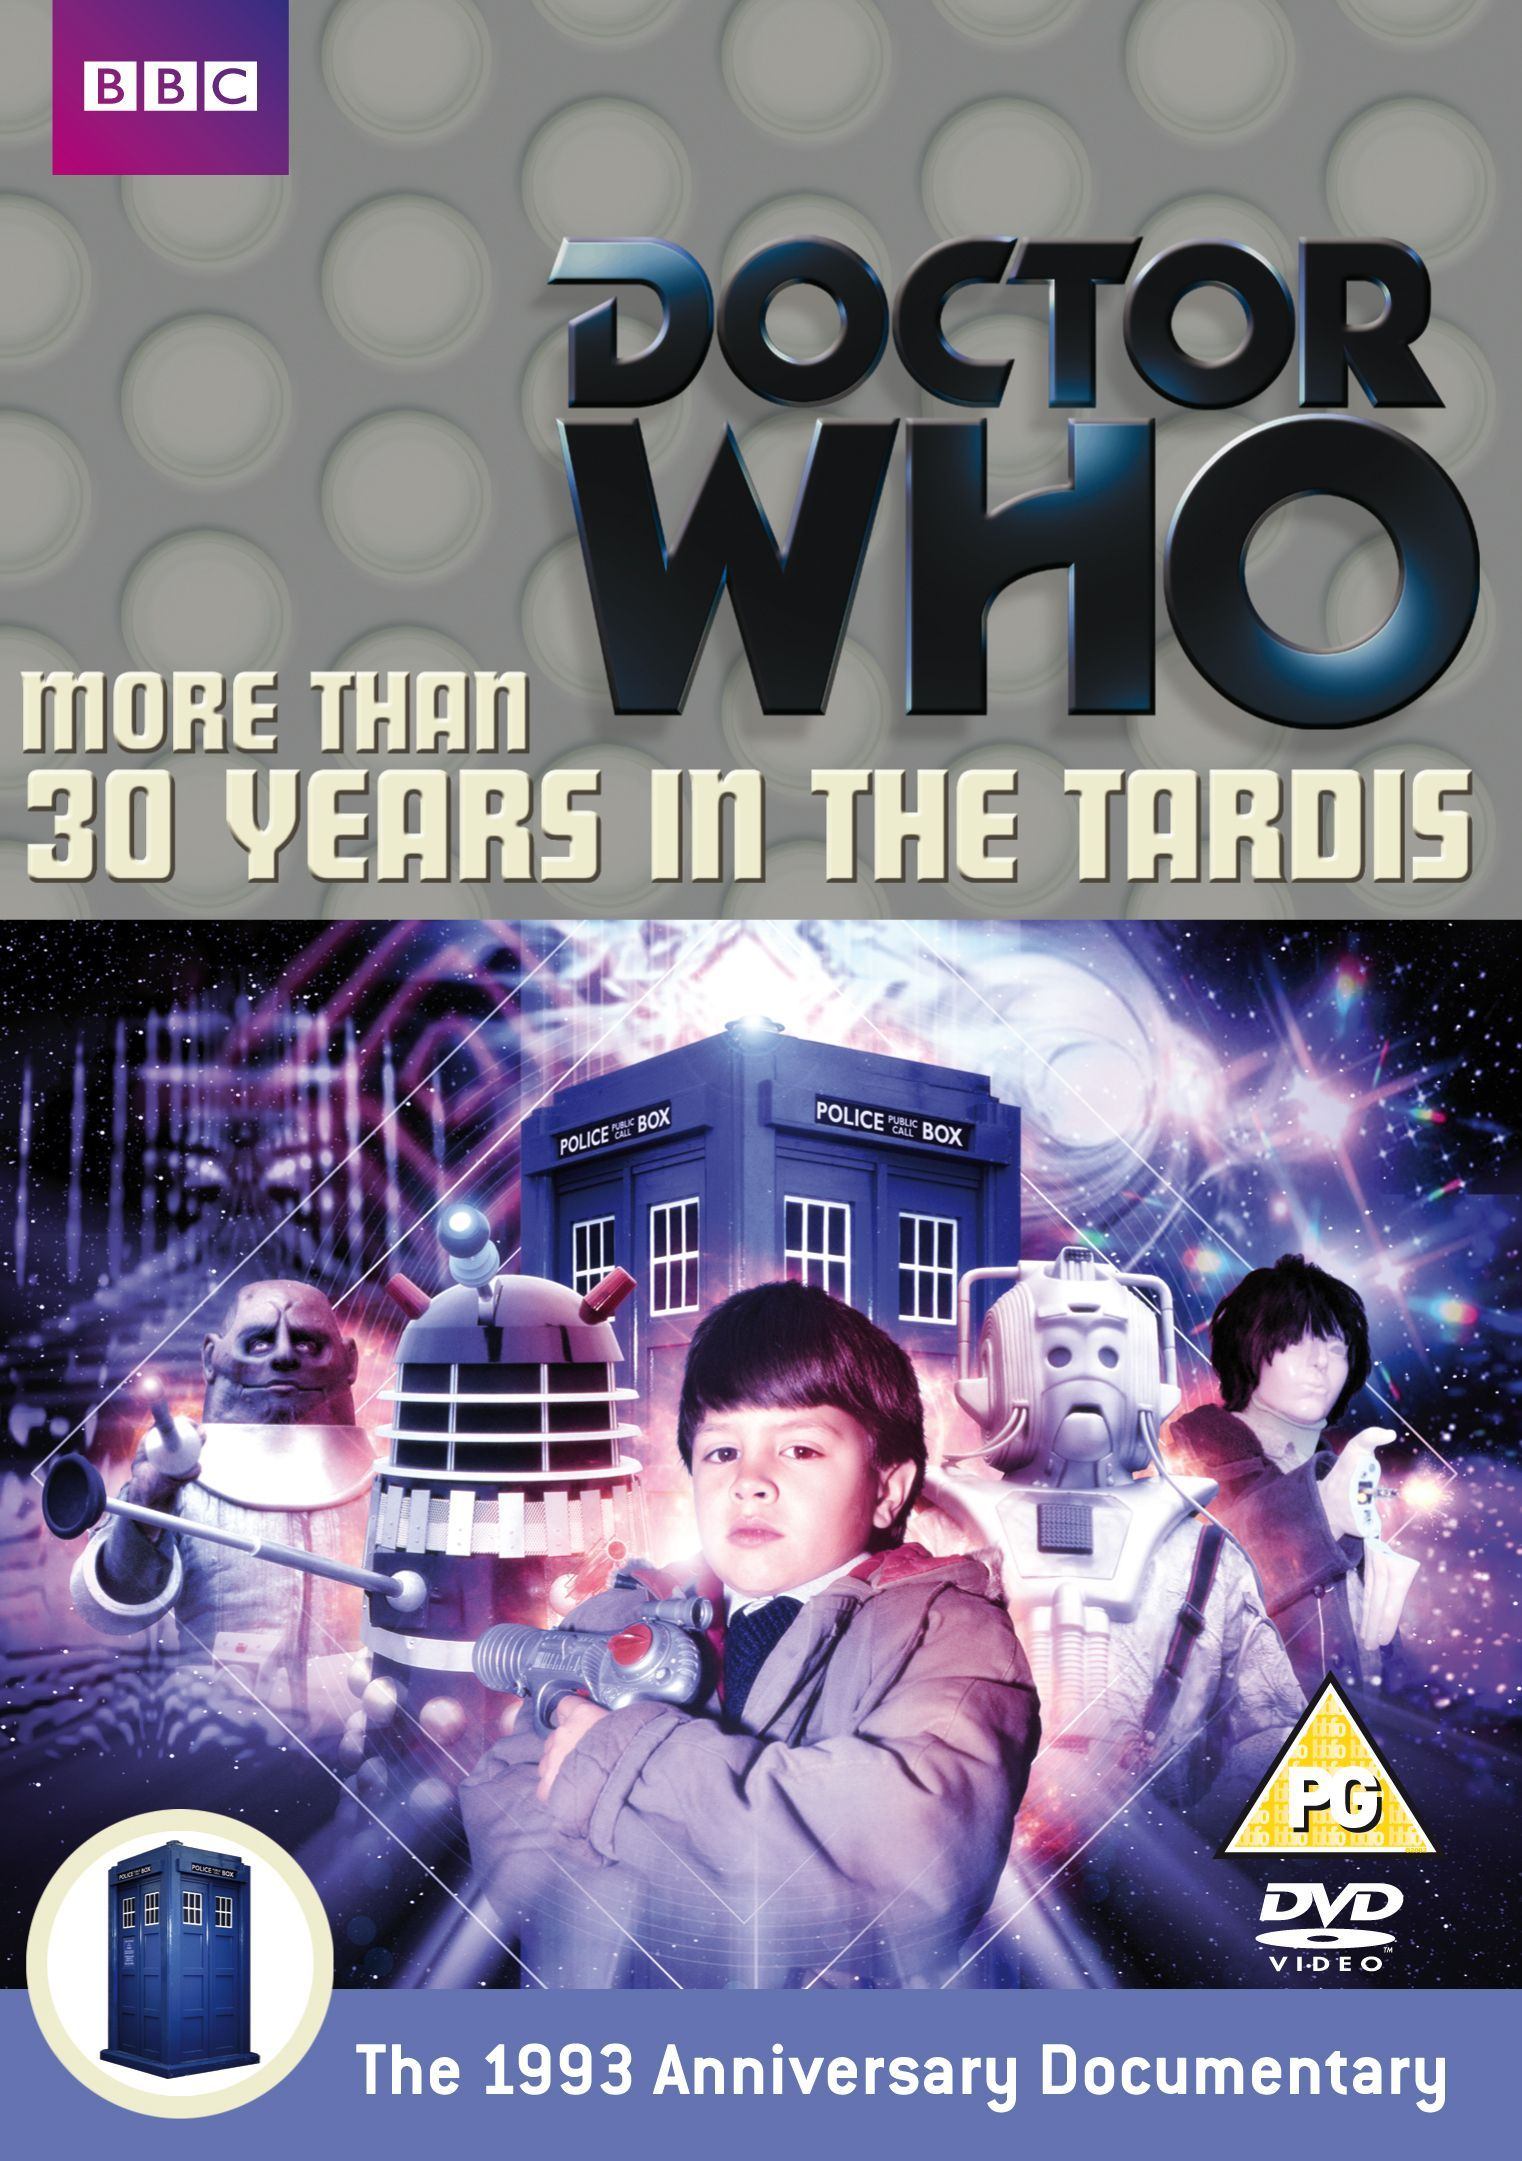 Doctor Who - More Than 30 Years in the Tardis